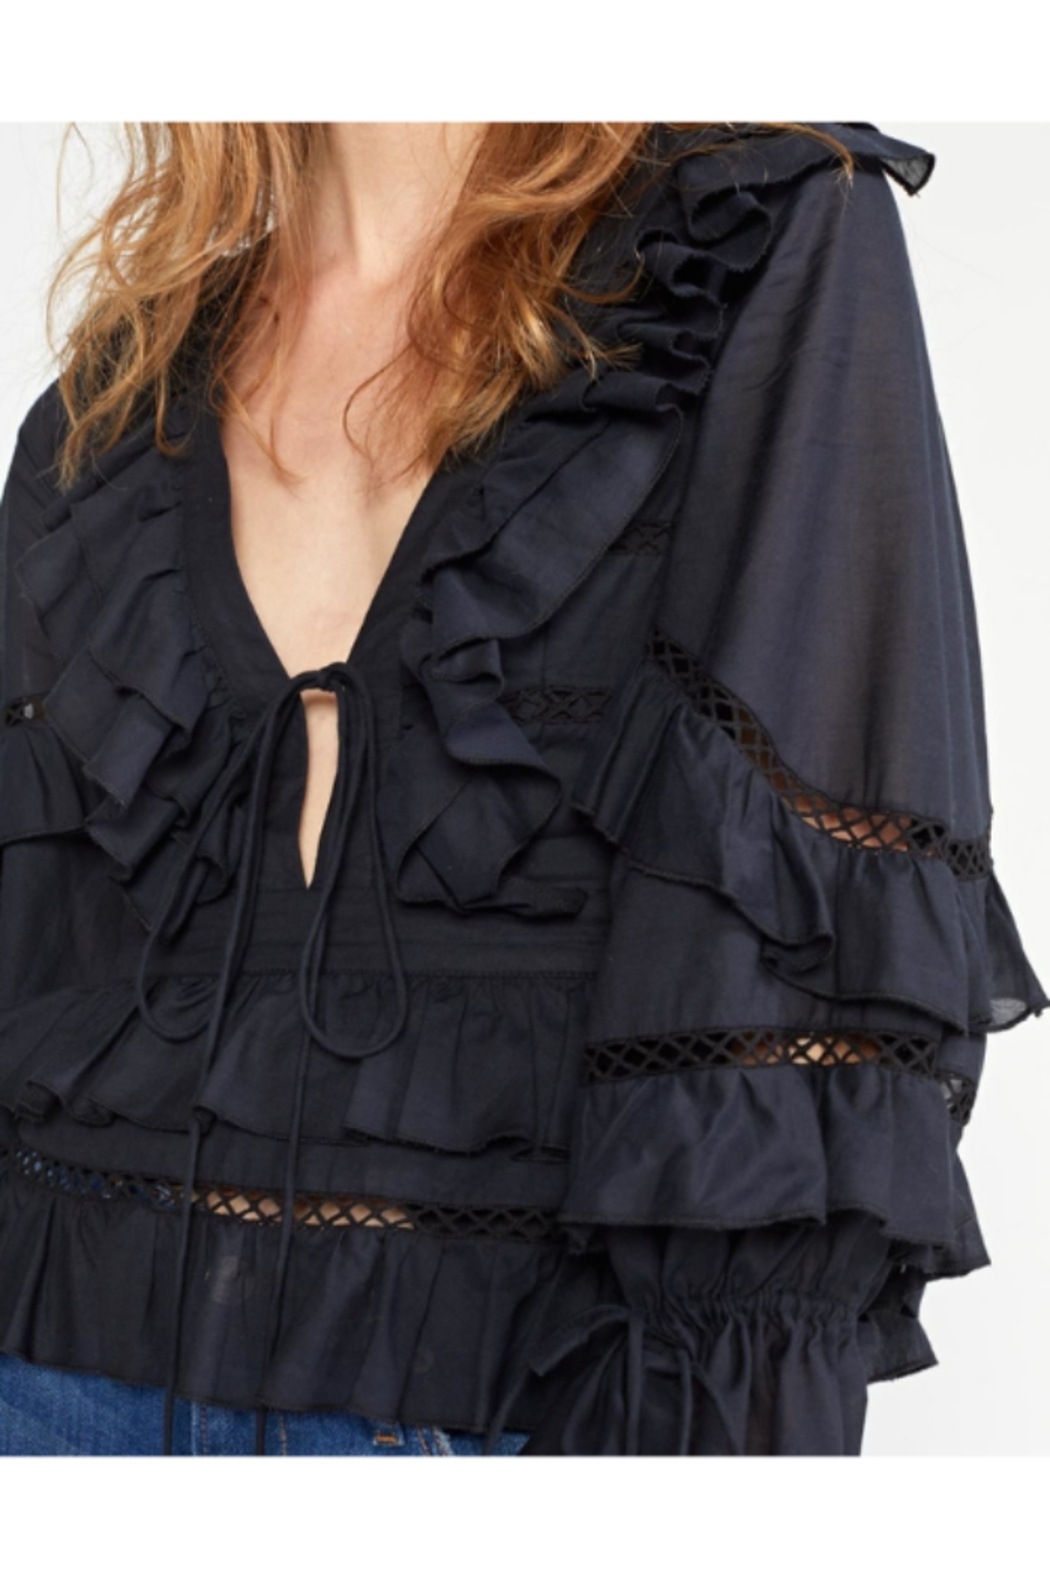 Cynthia Rowley Stella Tie Front Tiered Blouse - Side Cropped Image